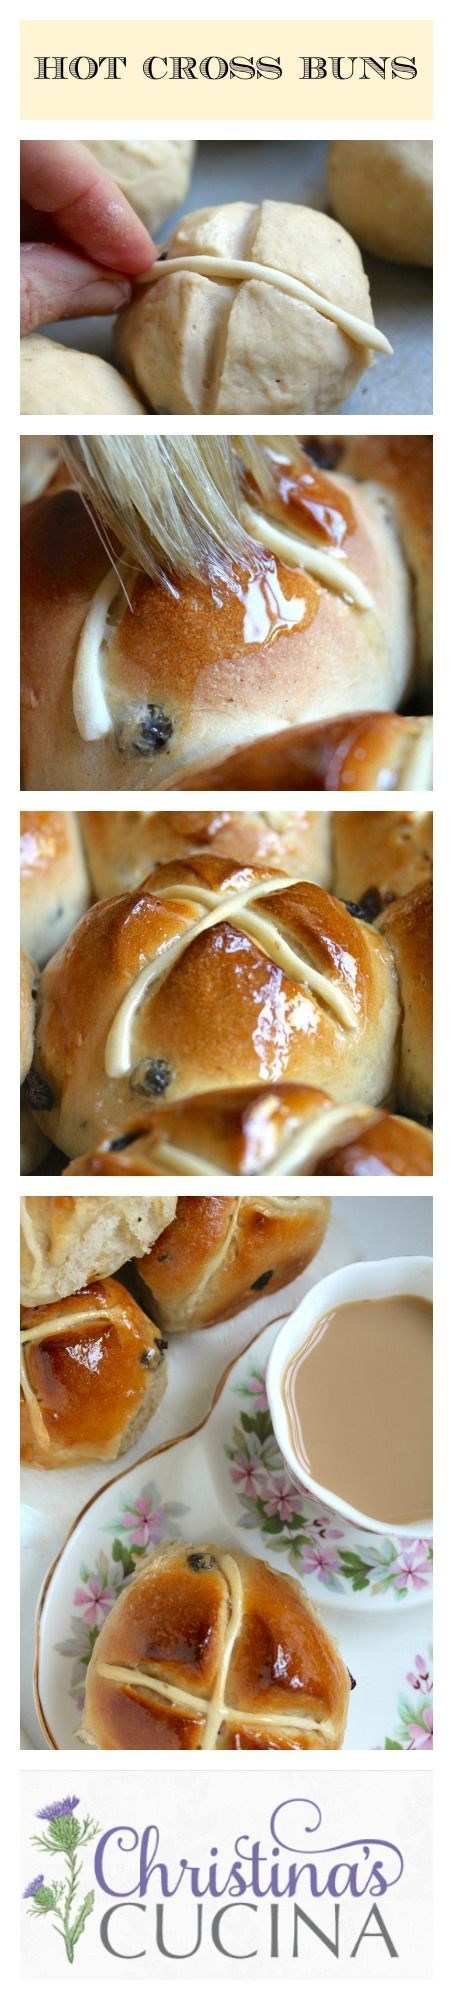 Easy Steps on How to Make Delicious Hot Cross Buns!